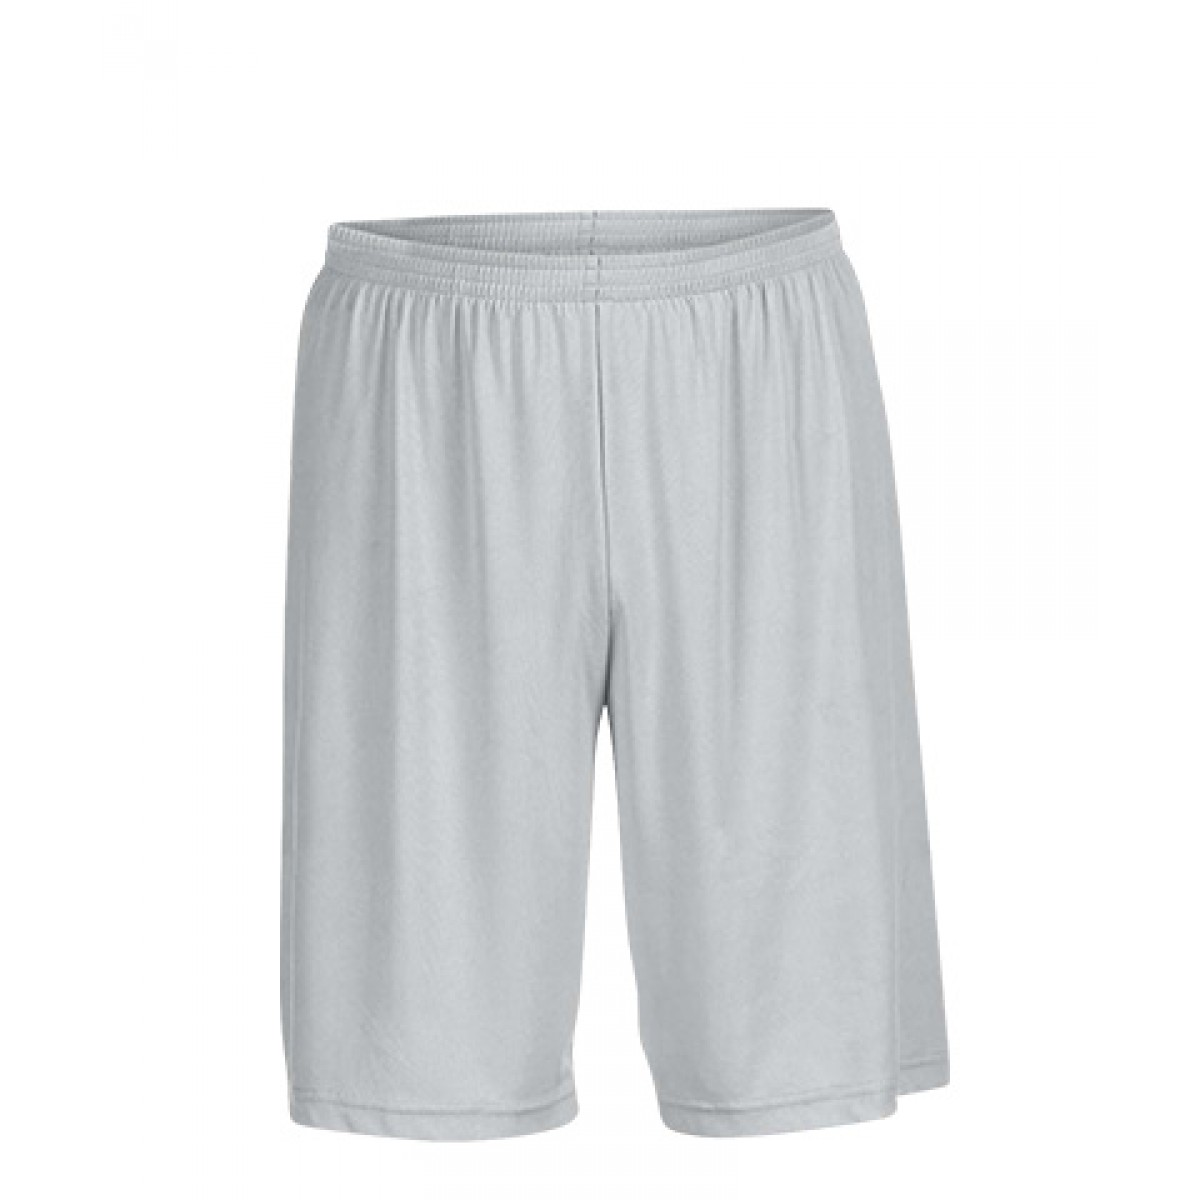 Men's Performance Shorts-Silver-M